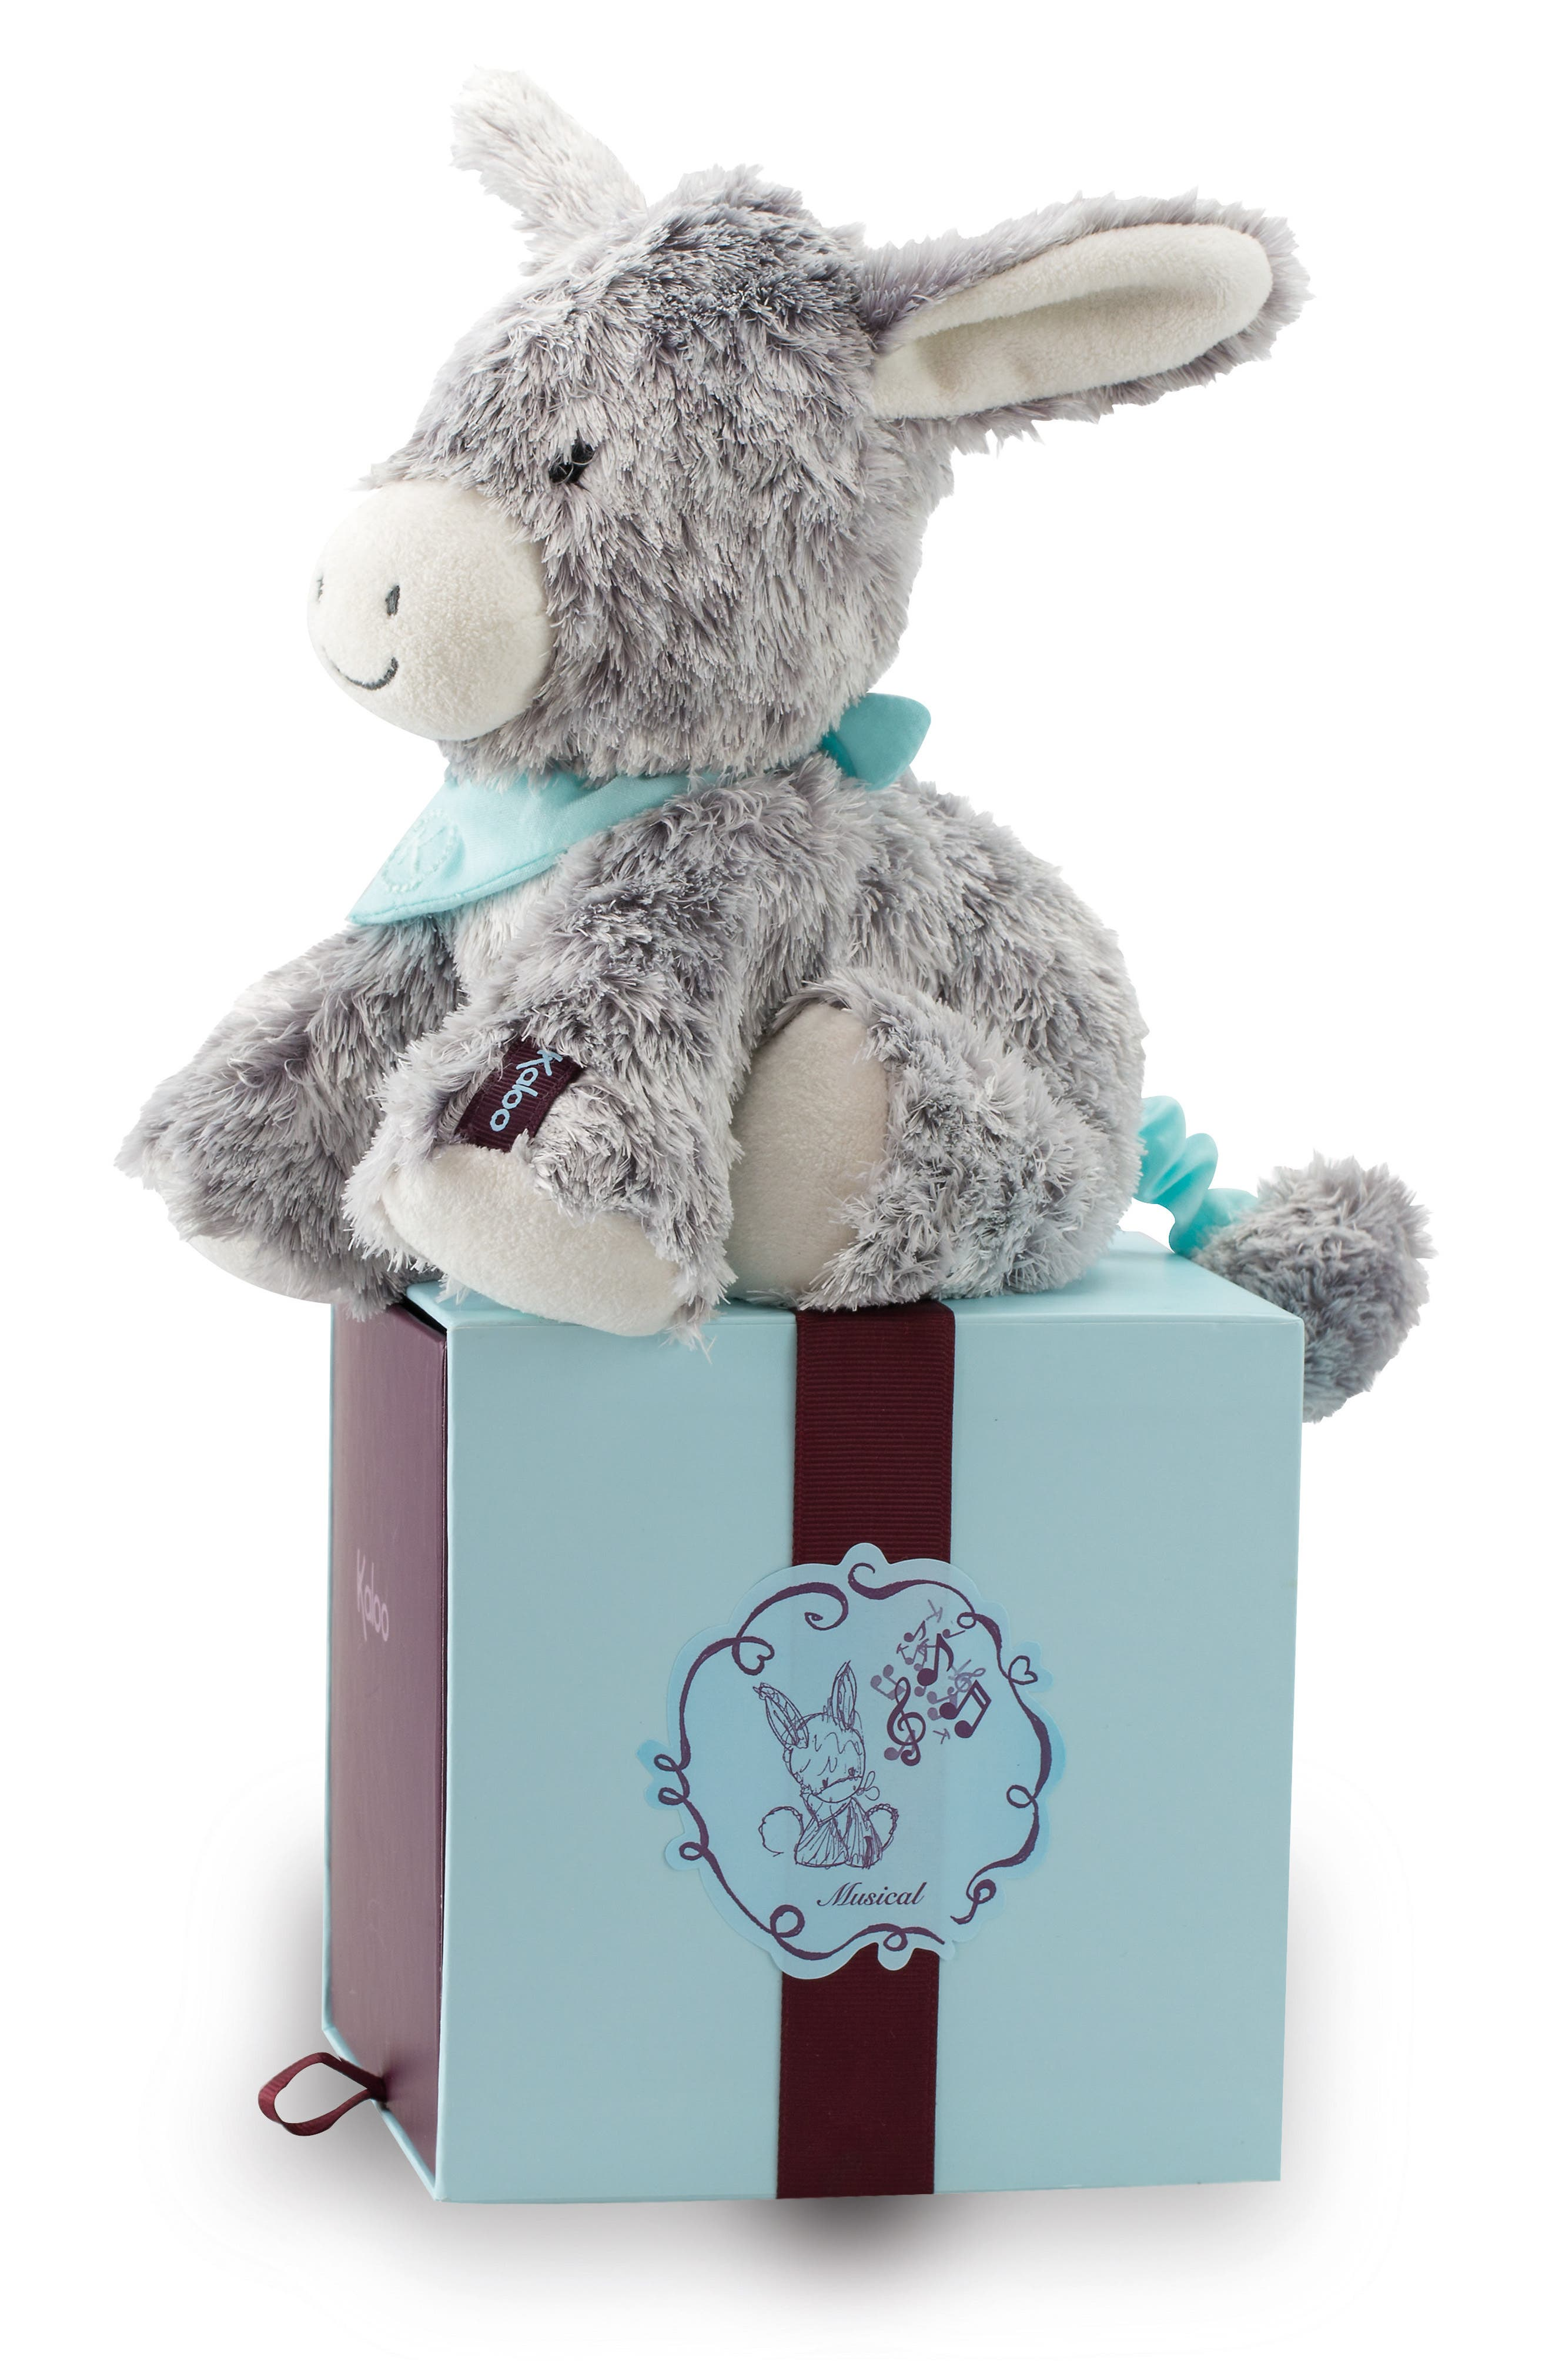 Kaloo Baby Items Clothing Gear Shoes And More Nordstrom Chicco Musical Box Rabbit Blue With Gift